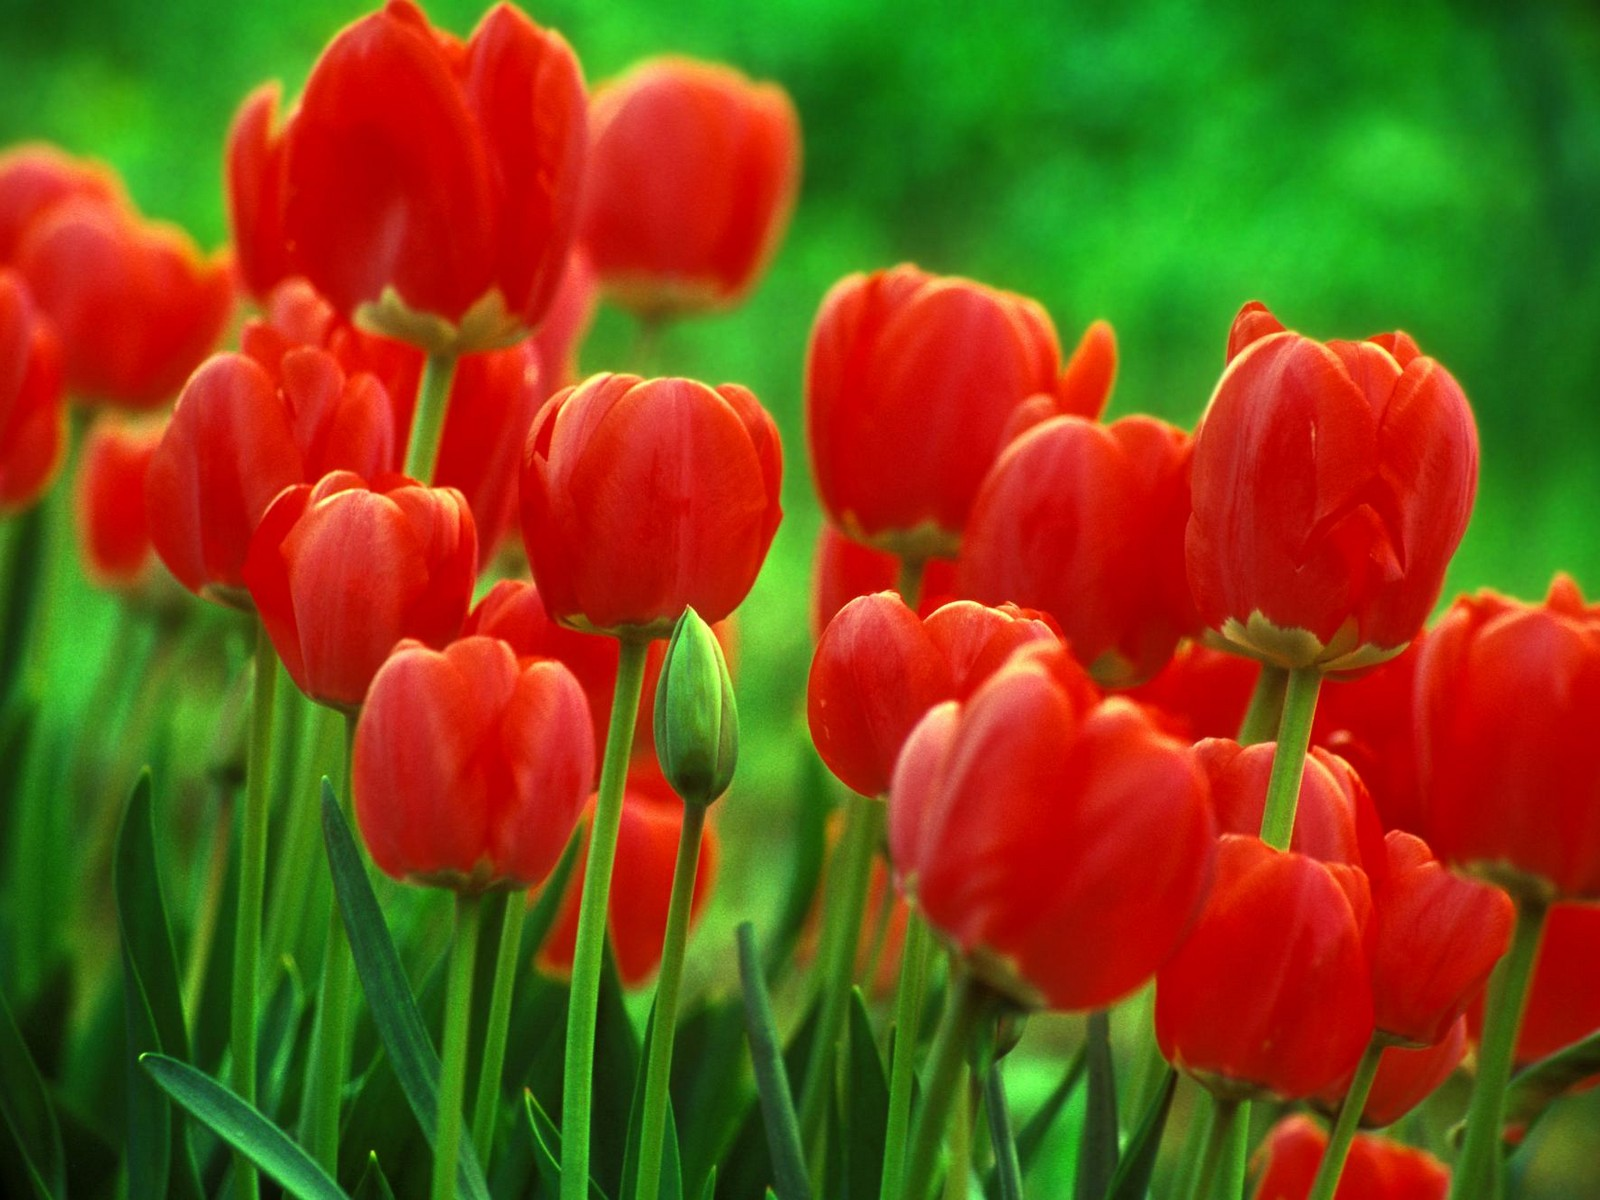 Flowers wallpaper red tulips flowers wallpaper red tulips flowers